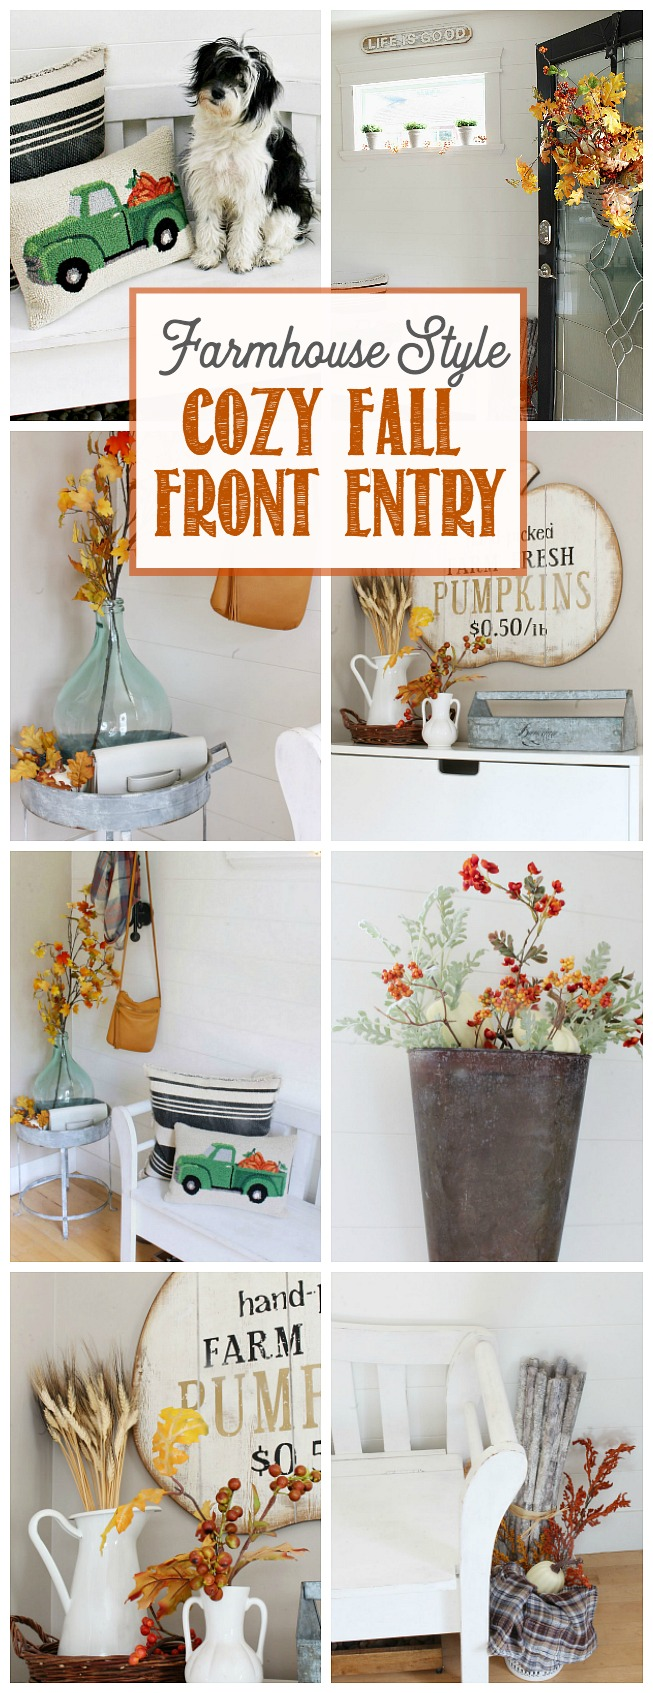 Pretty Farmhouse Style Fall Front Entry. Simple fall decorating tips to create a cozy and welcoming fall front entry.